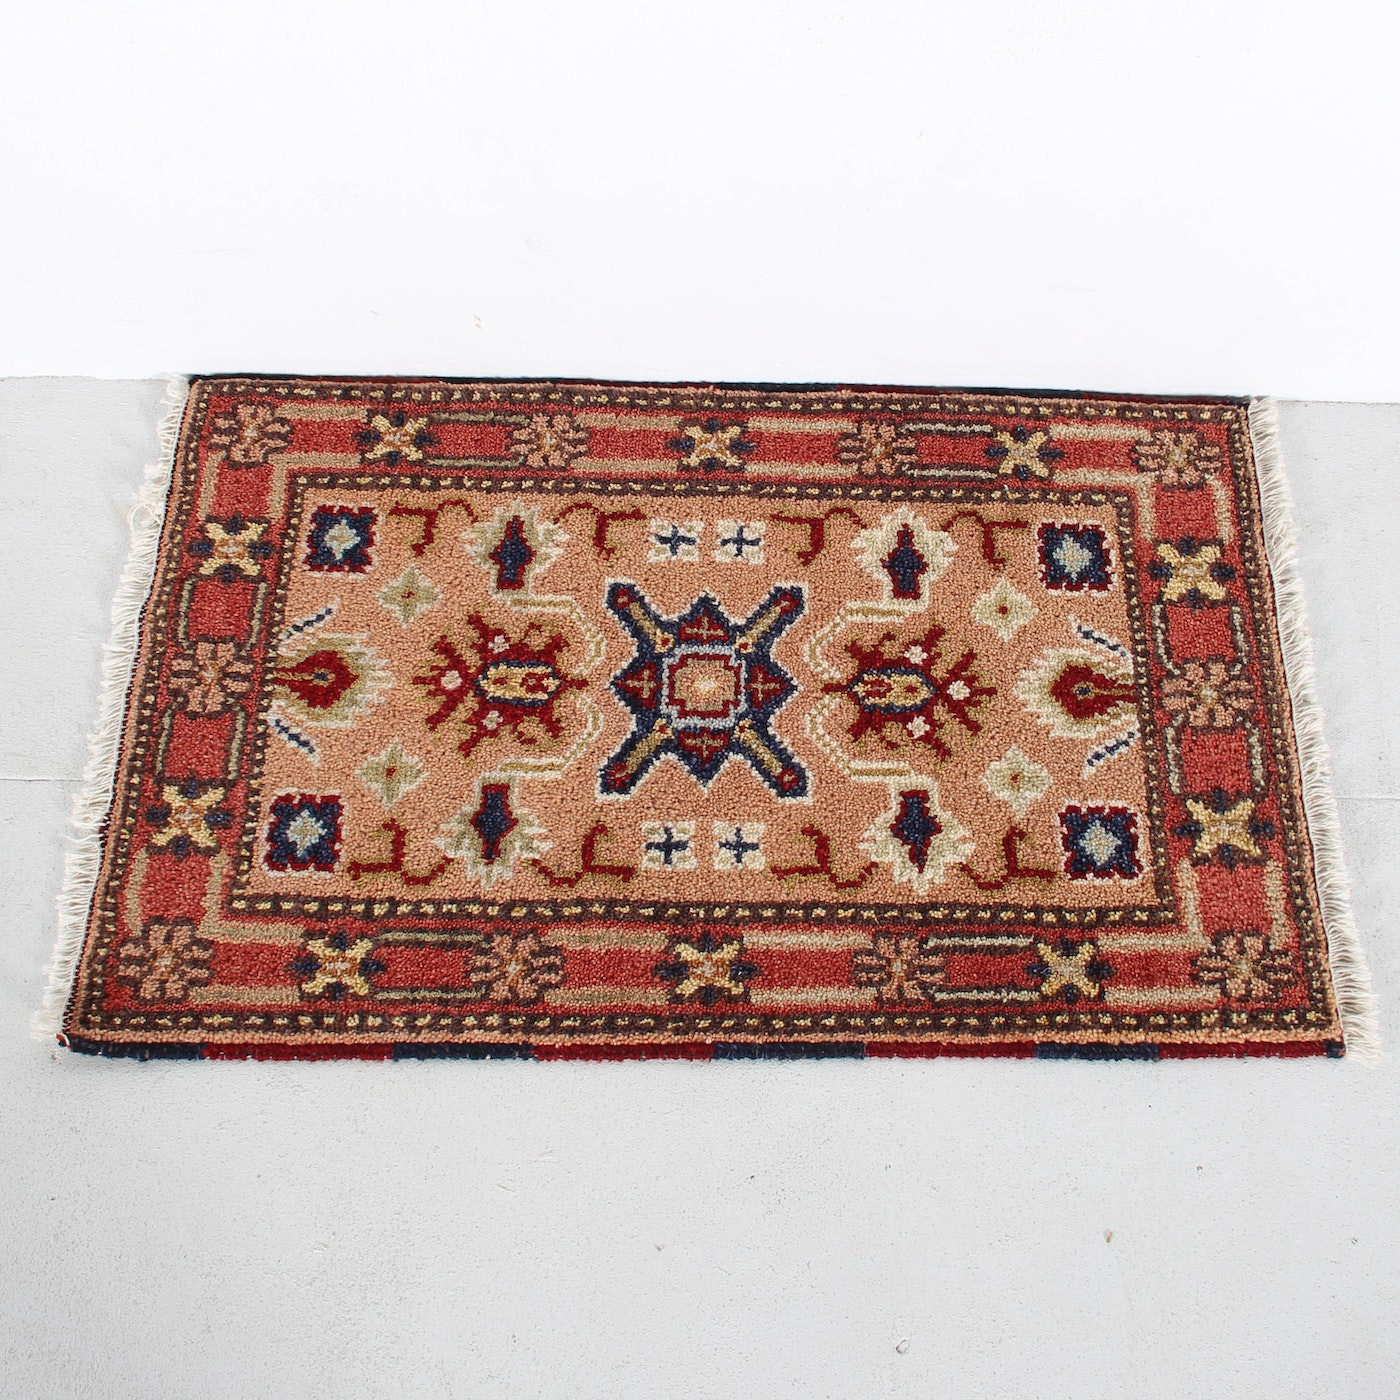 Hand Knotted Indo Persian Obeetee Wool Area Rug Ebth: Hand Knotted Serapi Rug : EBTH